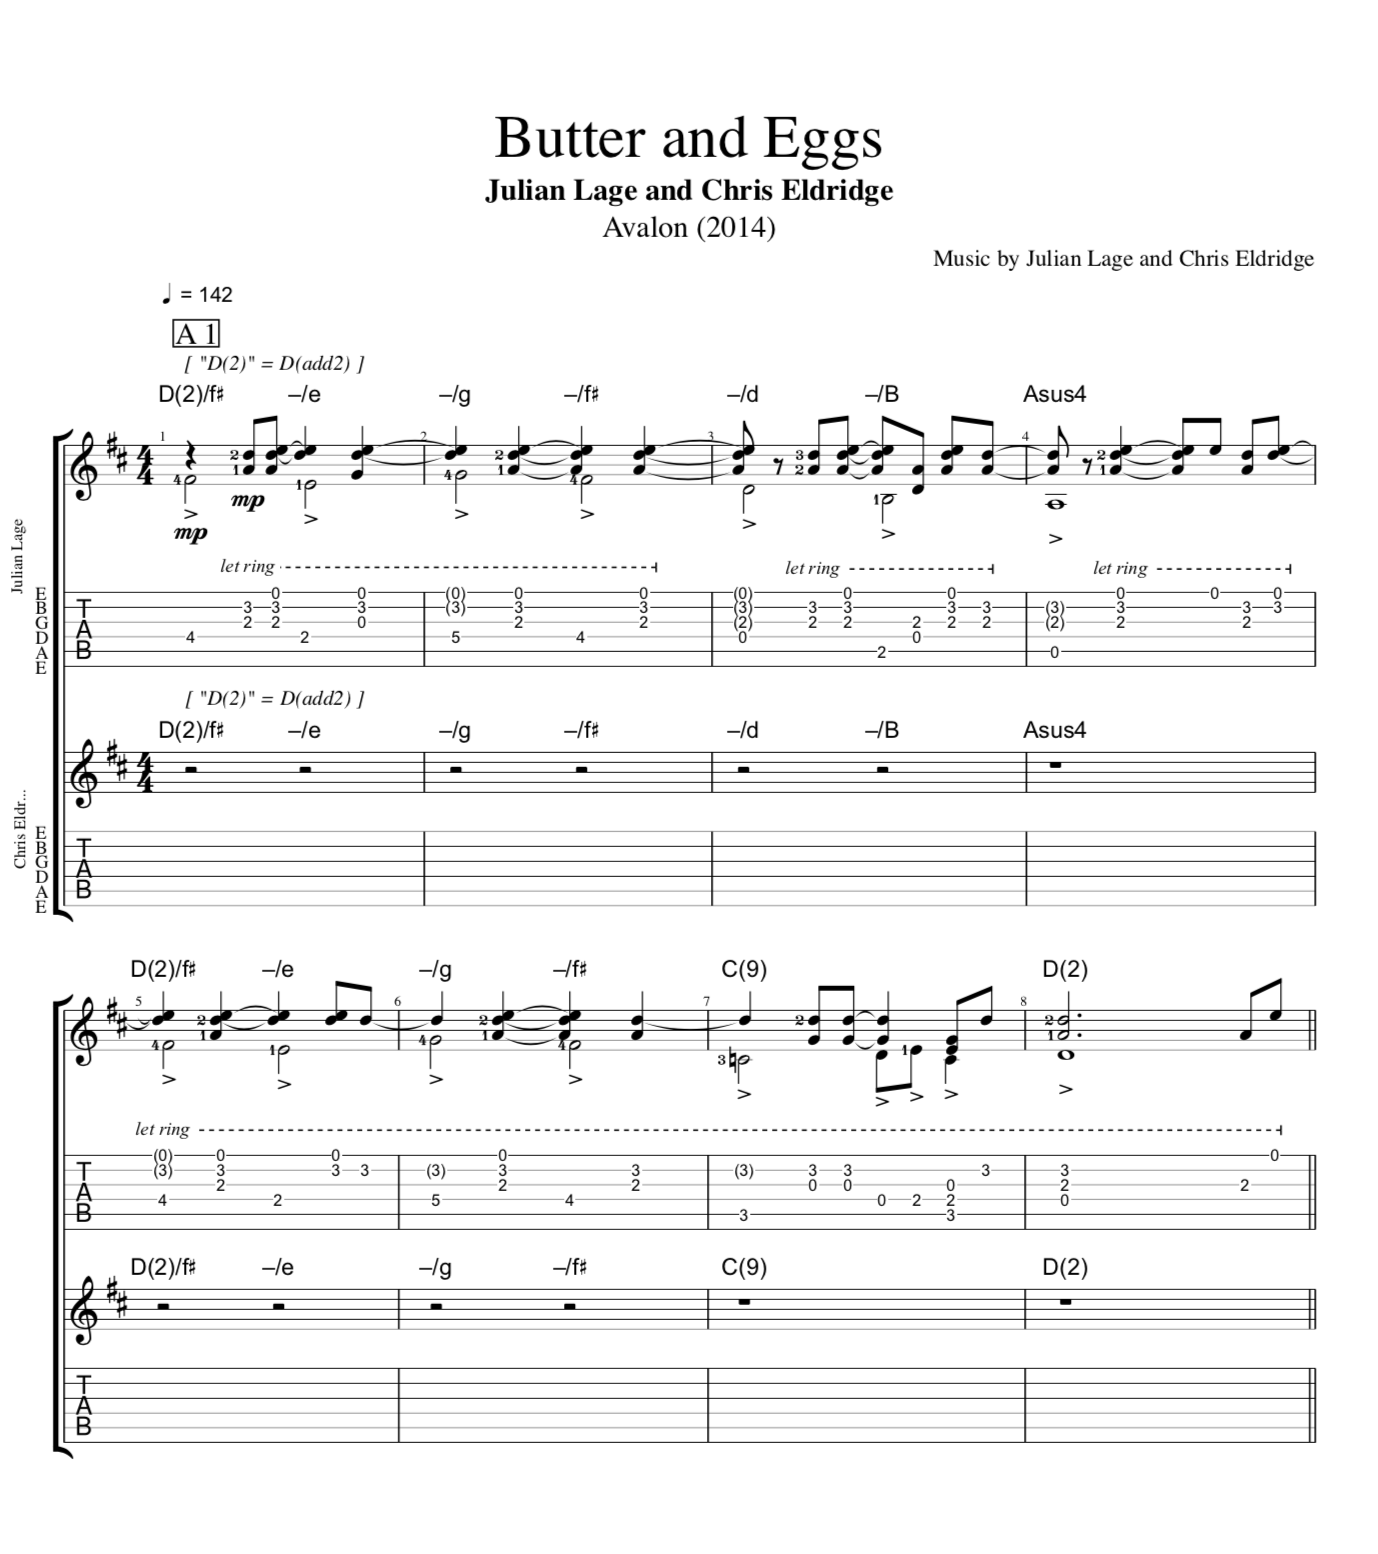 Butter And Eggs Avalon By Julian Lage And Chris Eldridge Guitars Tabs Sheet Musicscore Chords Play Like The Greats Com